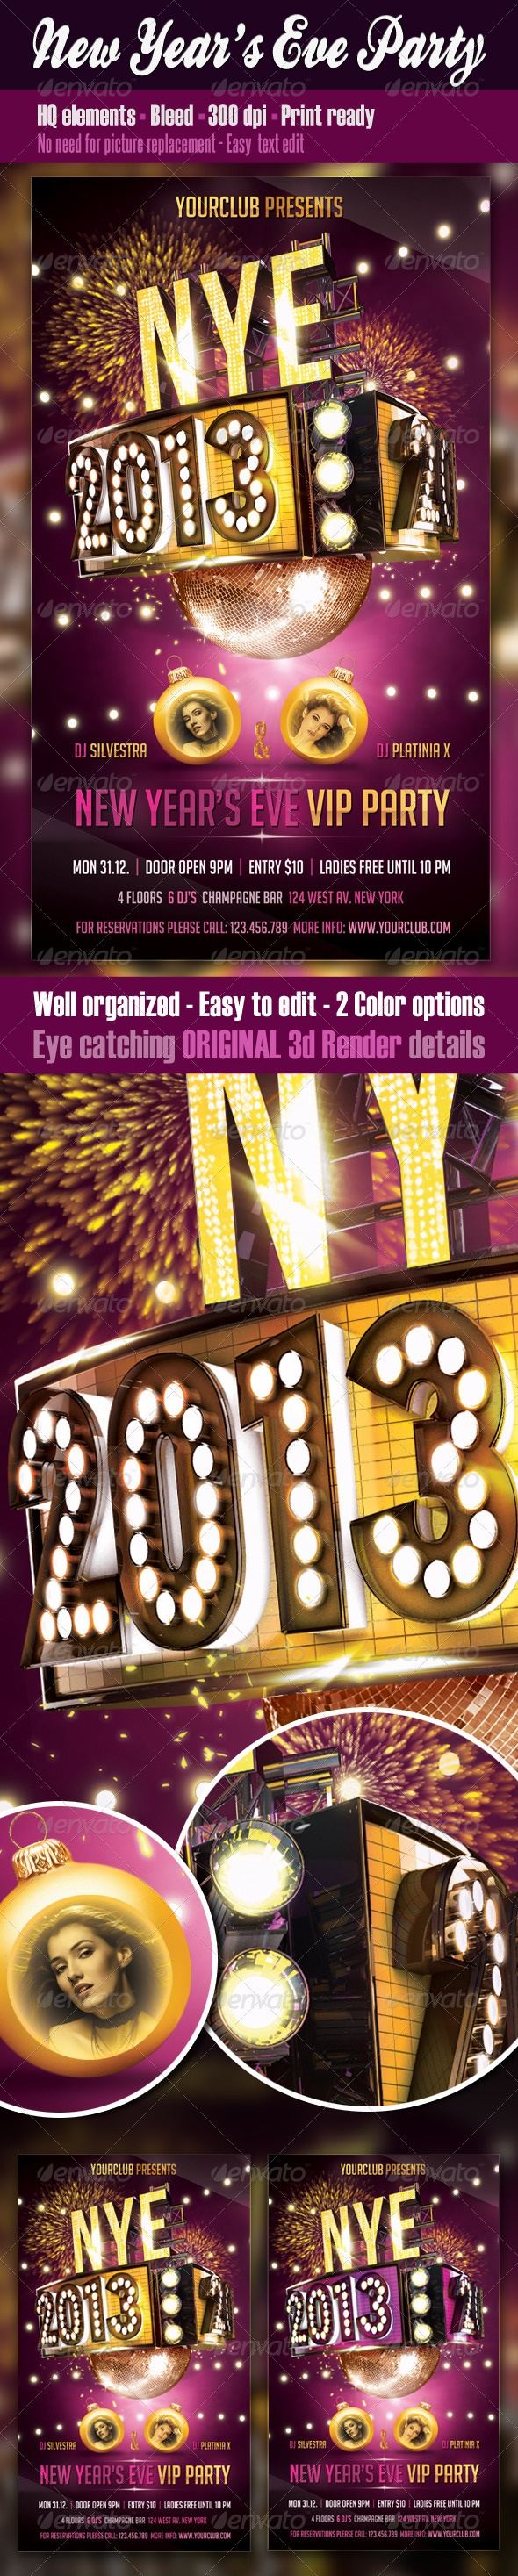 New Years Eve Party Flyer